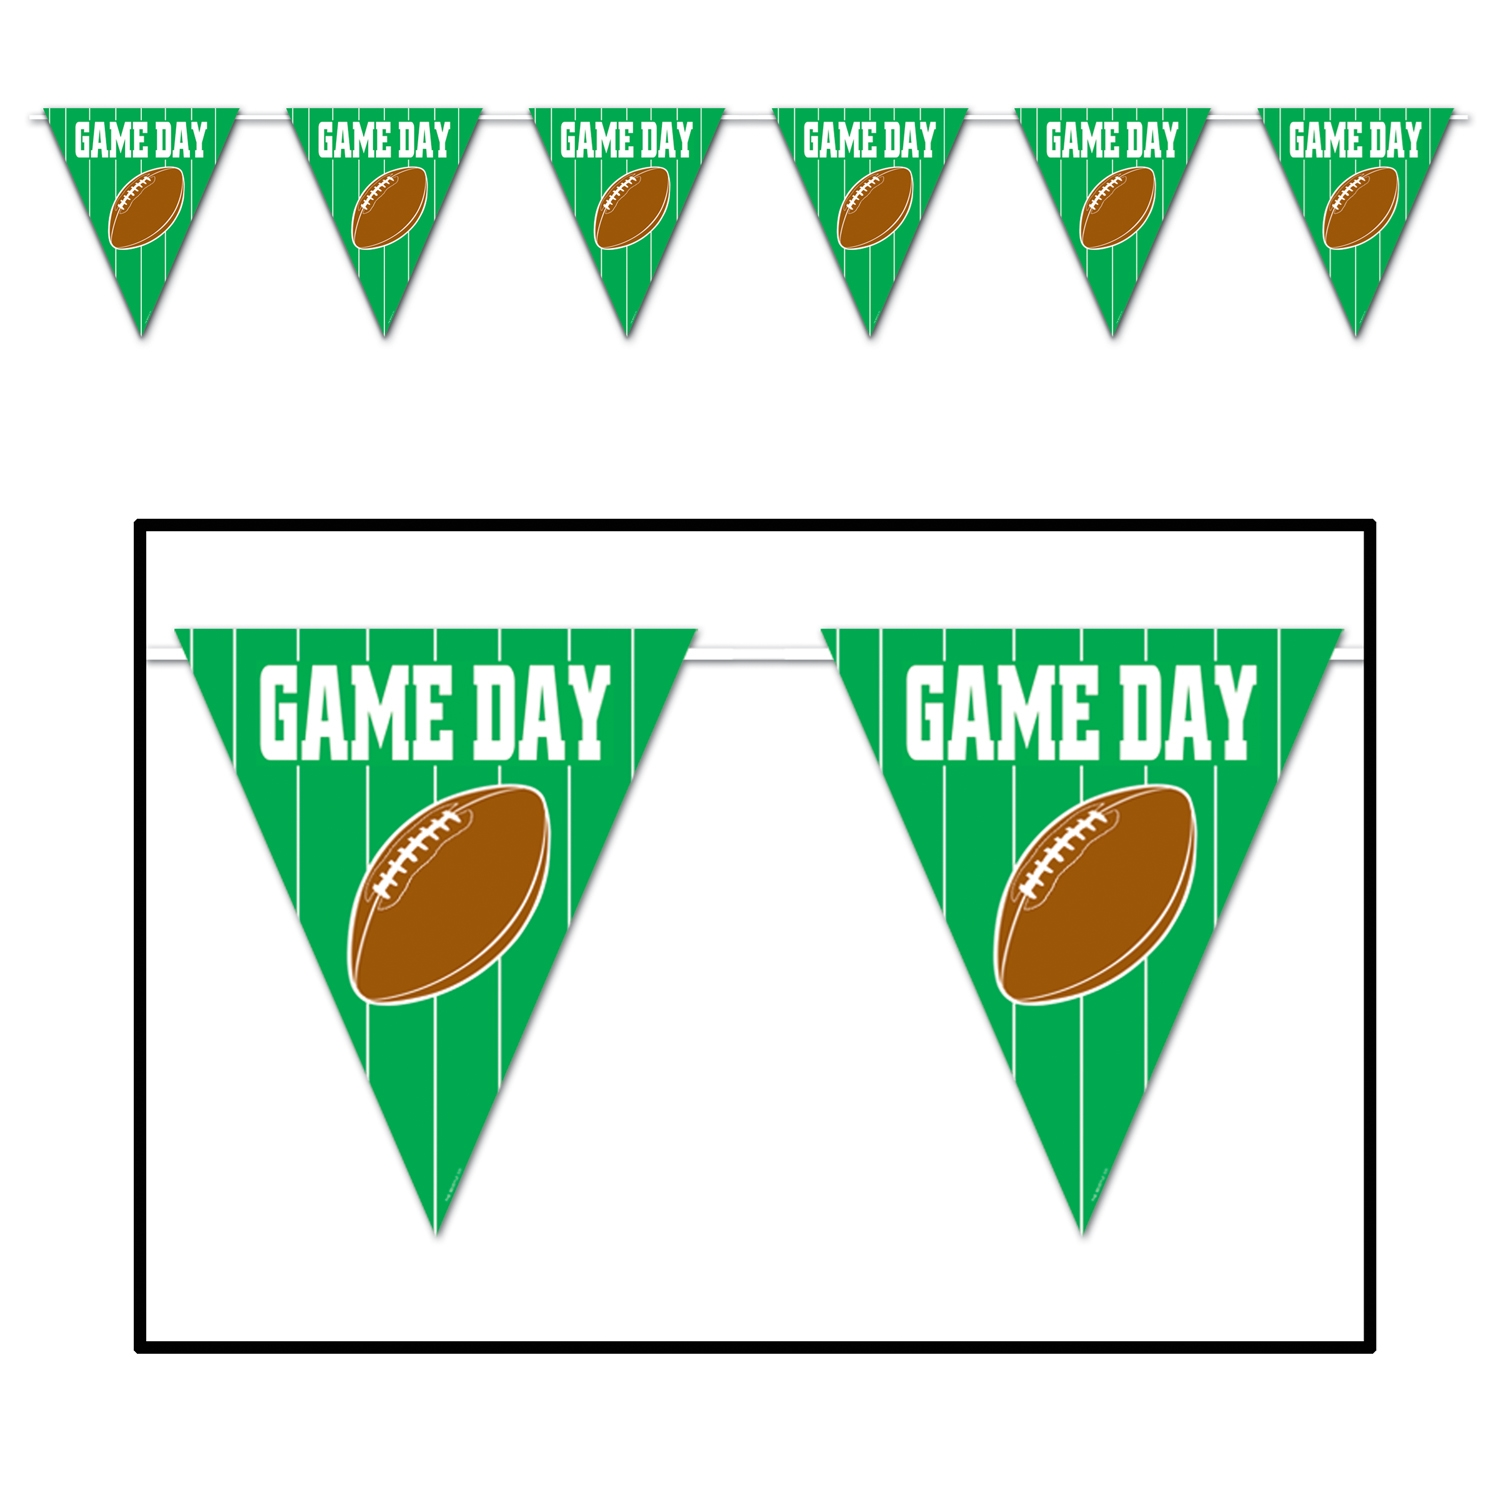 Game Day Football Giant Pennant Banner (Pack of 12) Game Day Football Giant Pennant Banner, decoration, football, superbowl, big game, wholesale, inexpensive, bulk